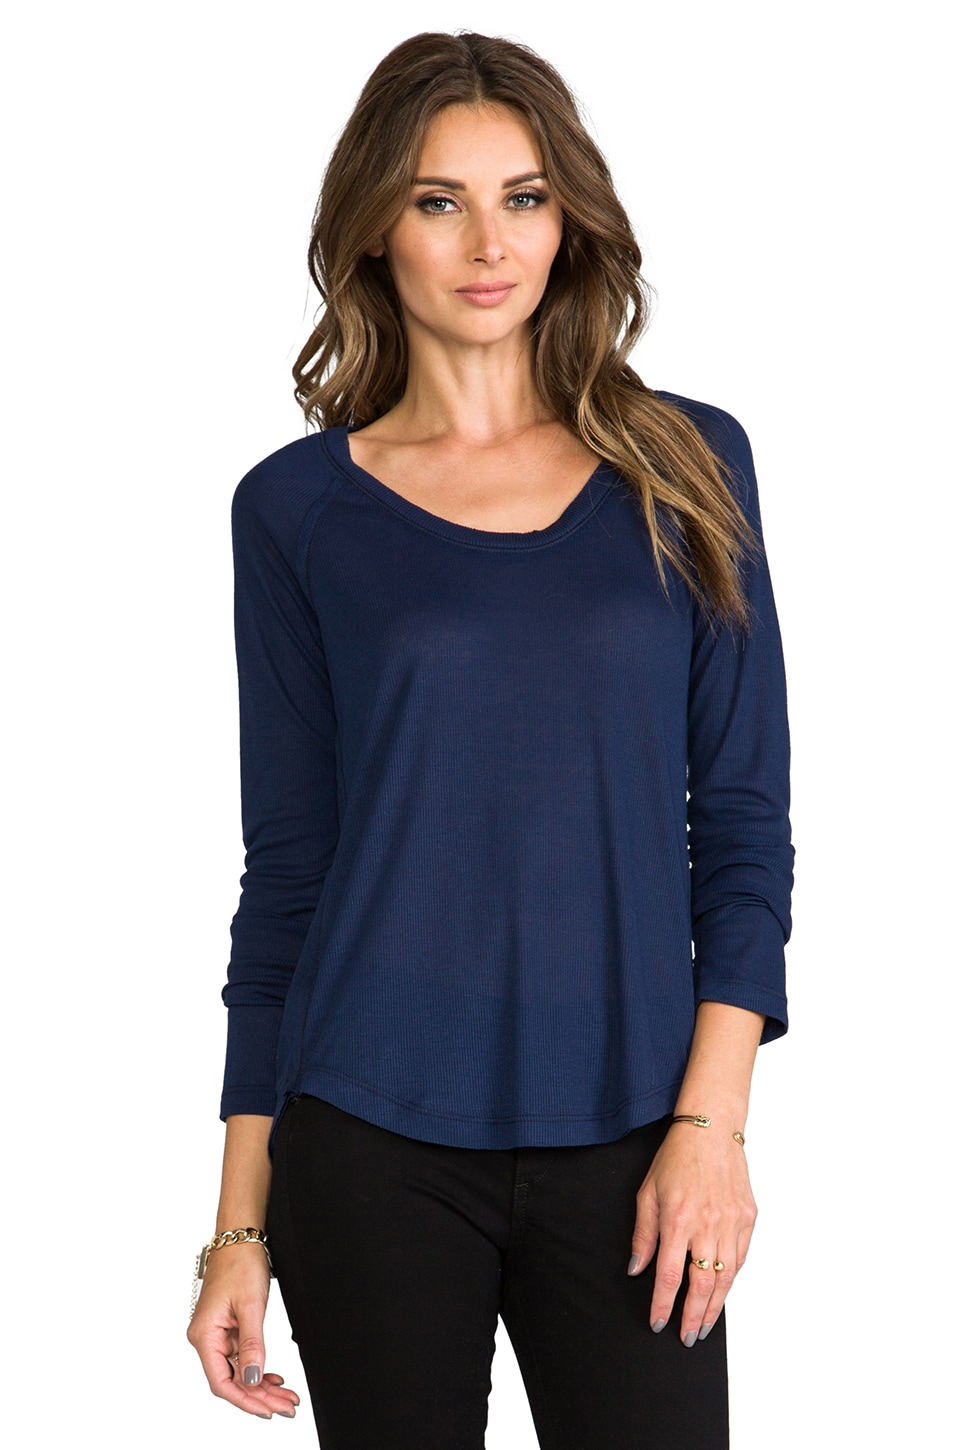 Splendid Drapey Rib Tee in Navy